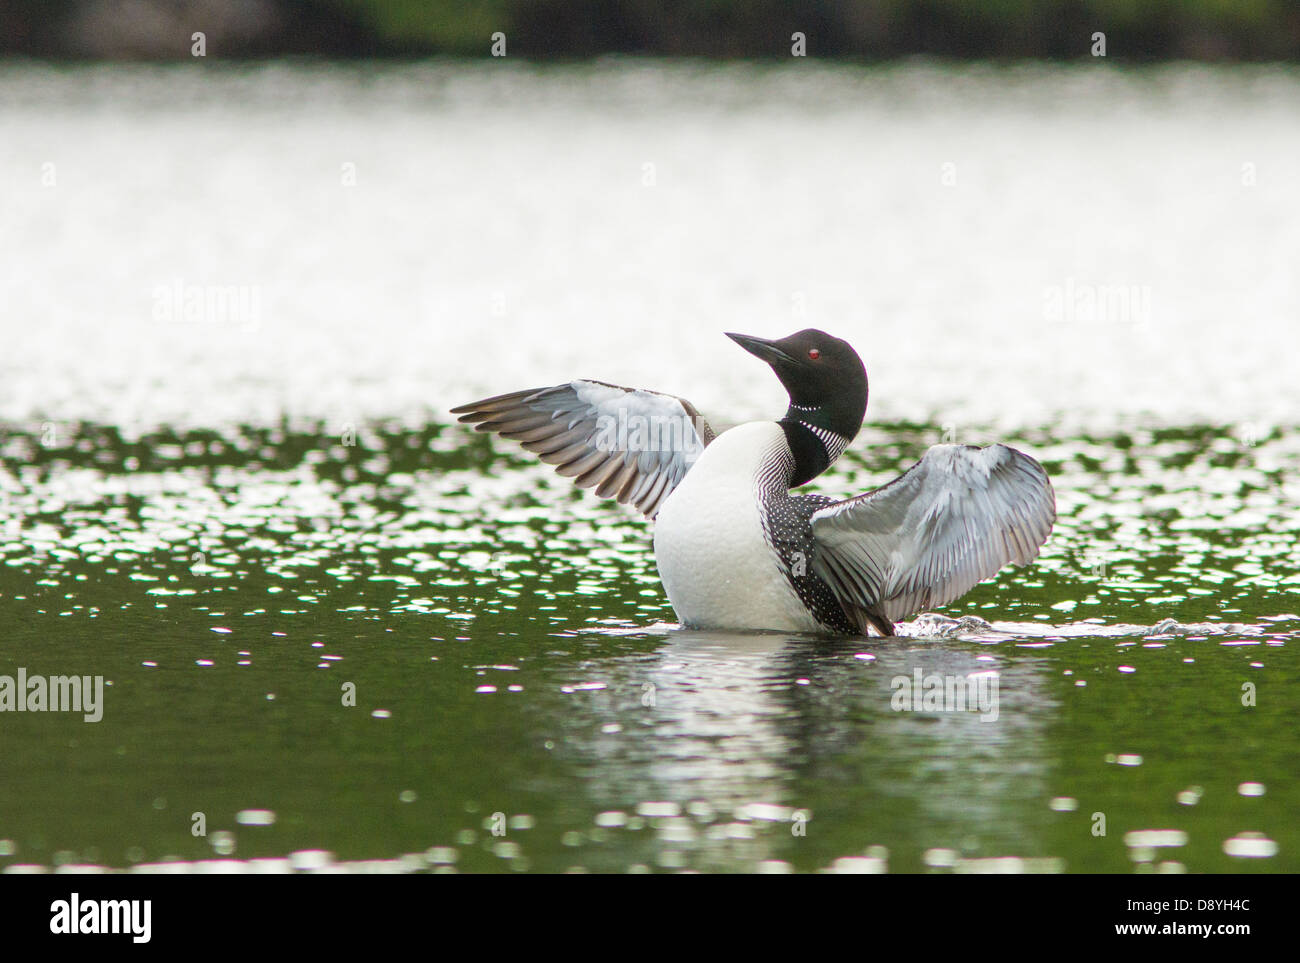 Common Loon (Gavia immer) Displaying on a Lake - Stock Image